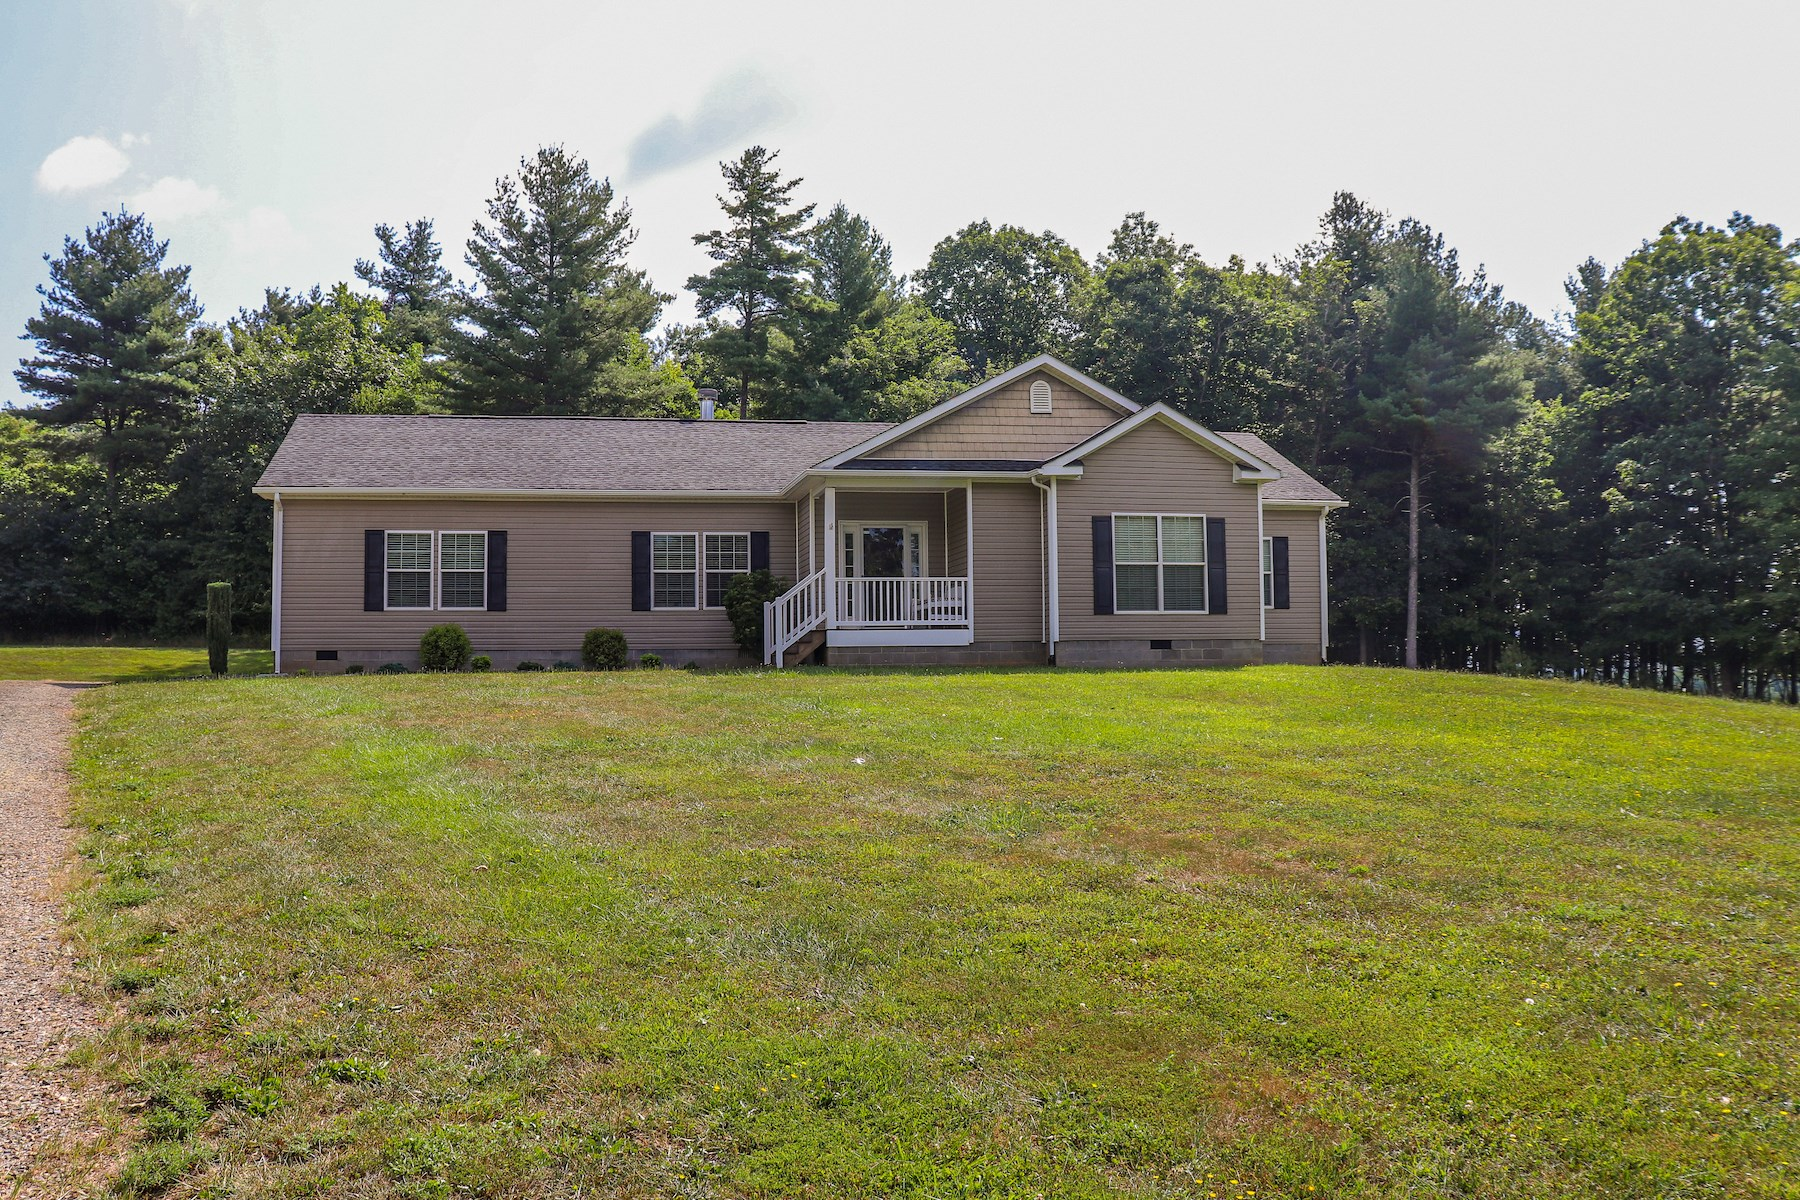 Home for Sale in Floyd VA!